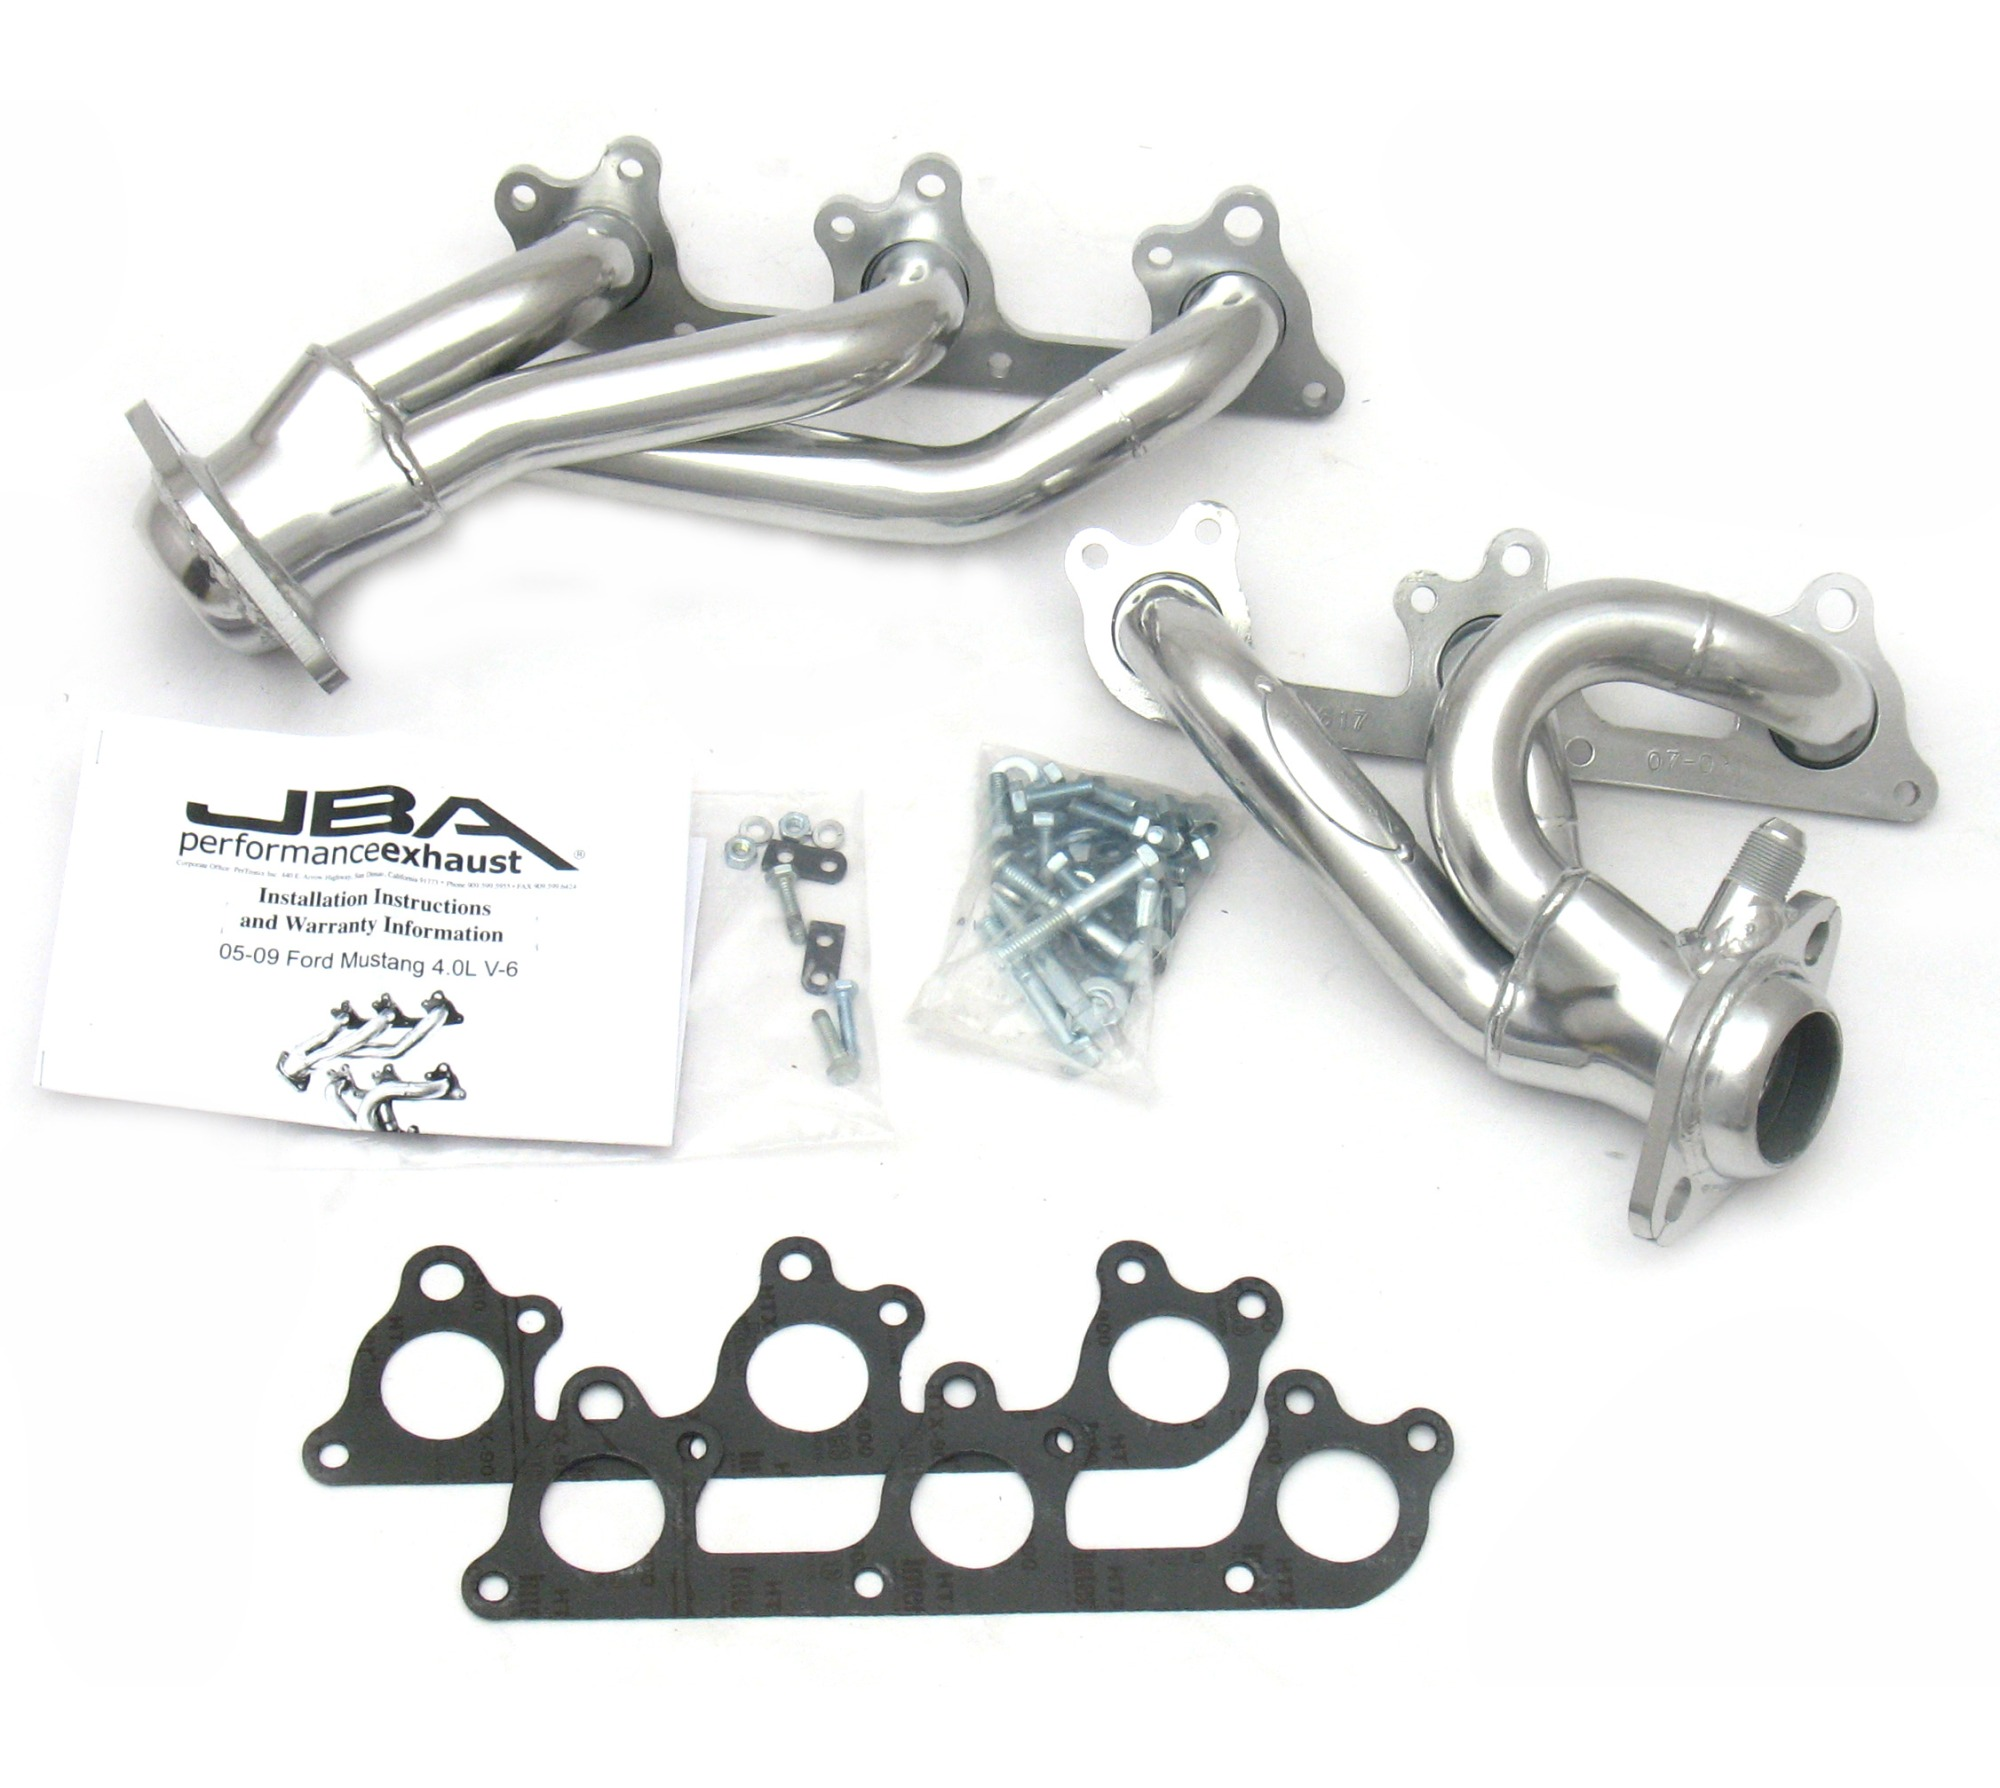 2005-2010 Mustang V6 JBA Cat-Forward Shorty Headers (4.0L) - Silver Ceramic